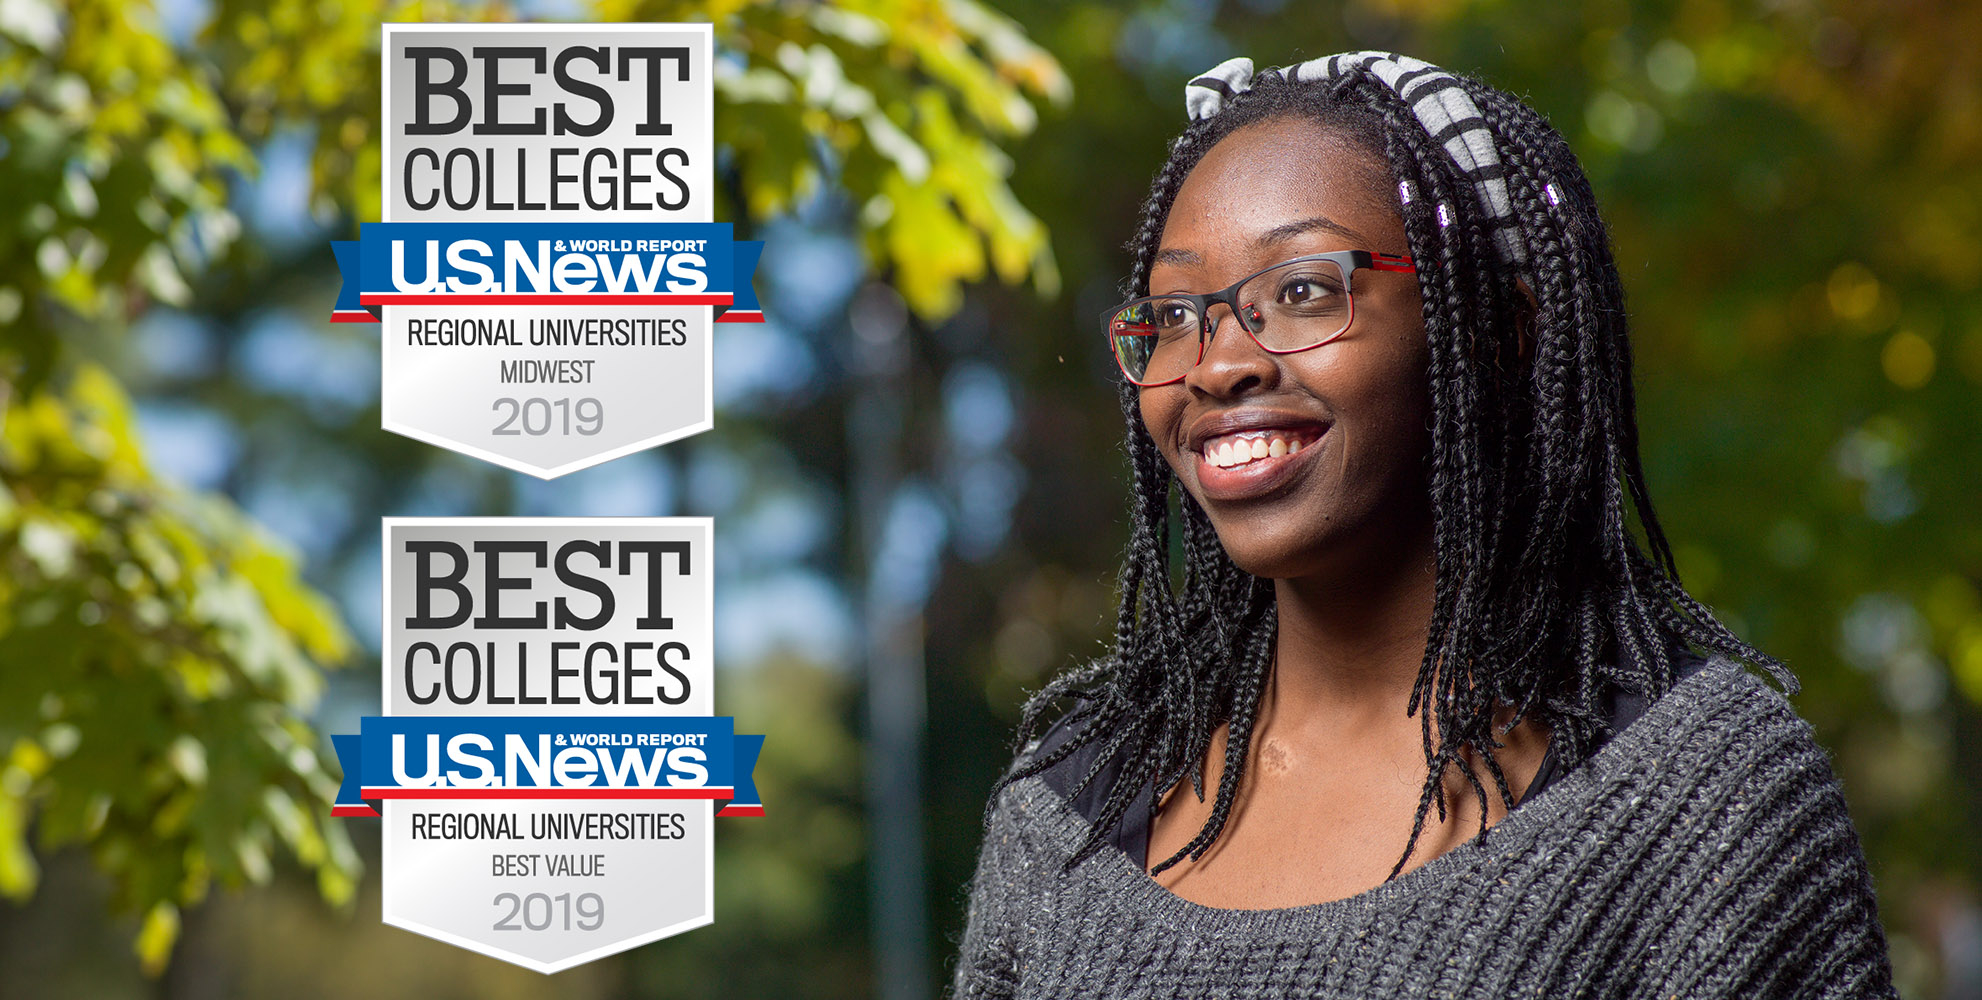 """Best Colleges U.S. Nes & World Report Regional Universities Midwest 2019 & Best Value 2019"""